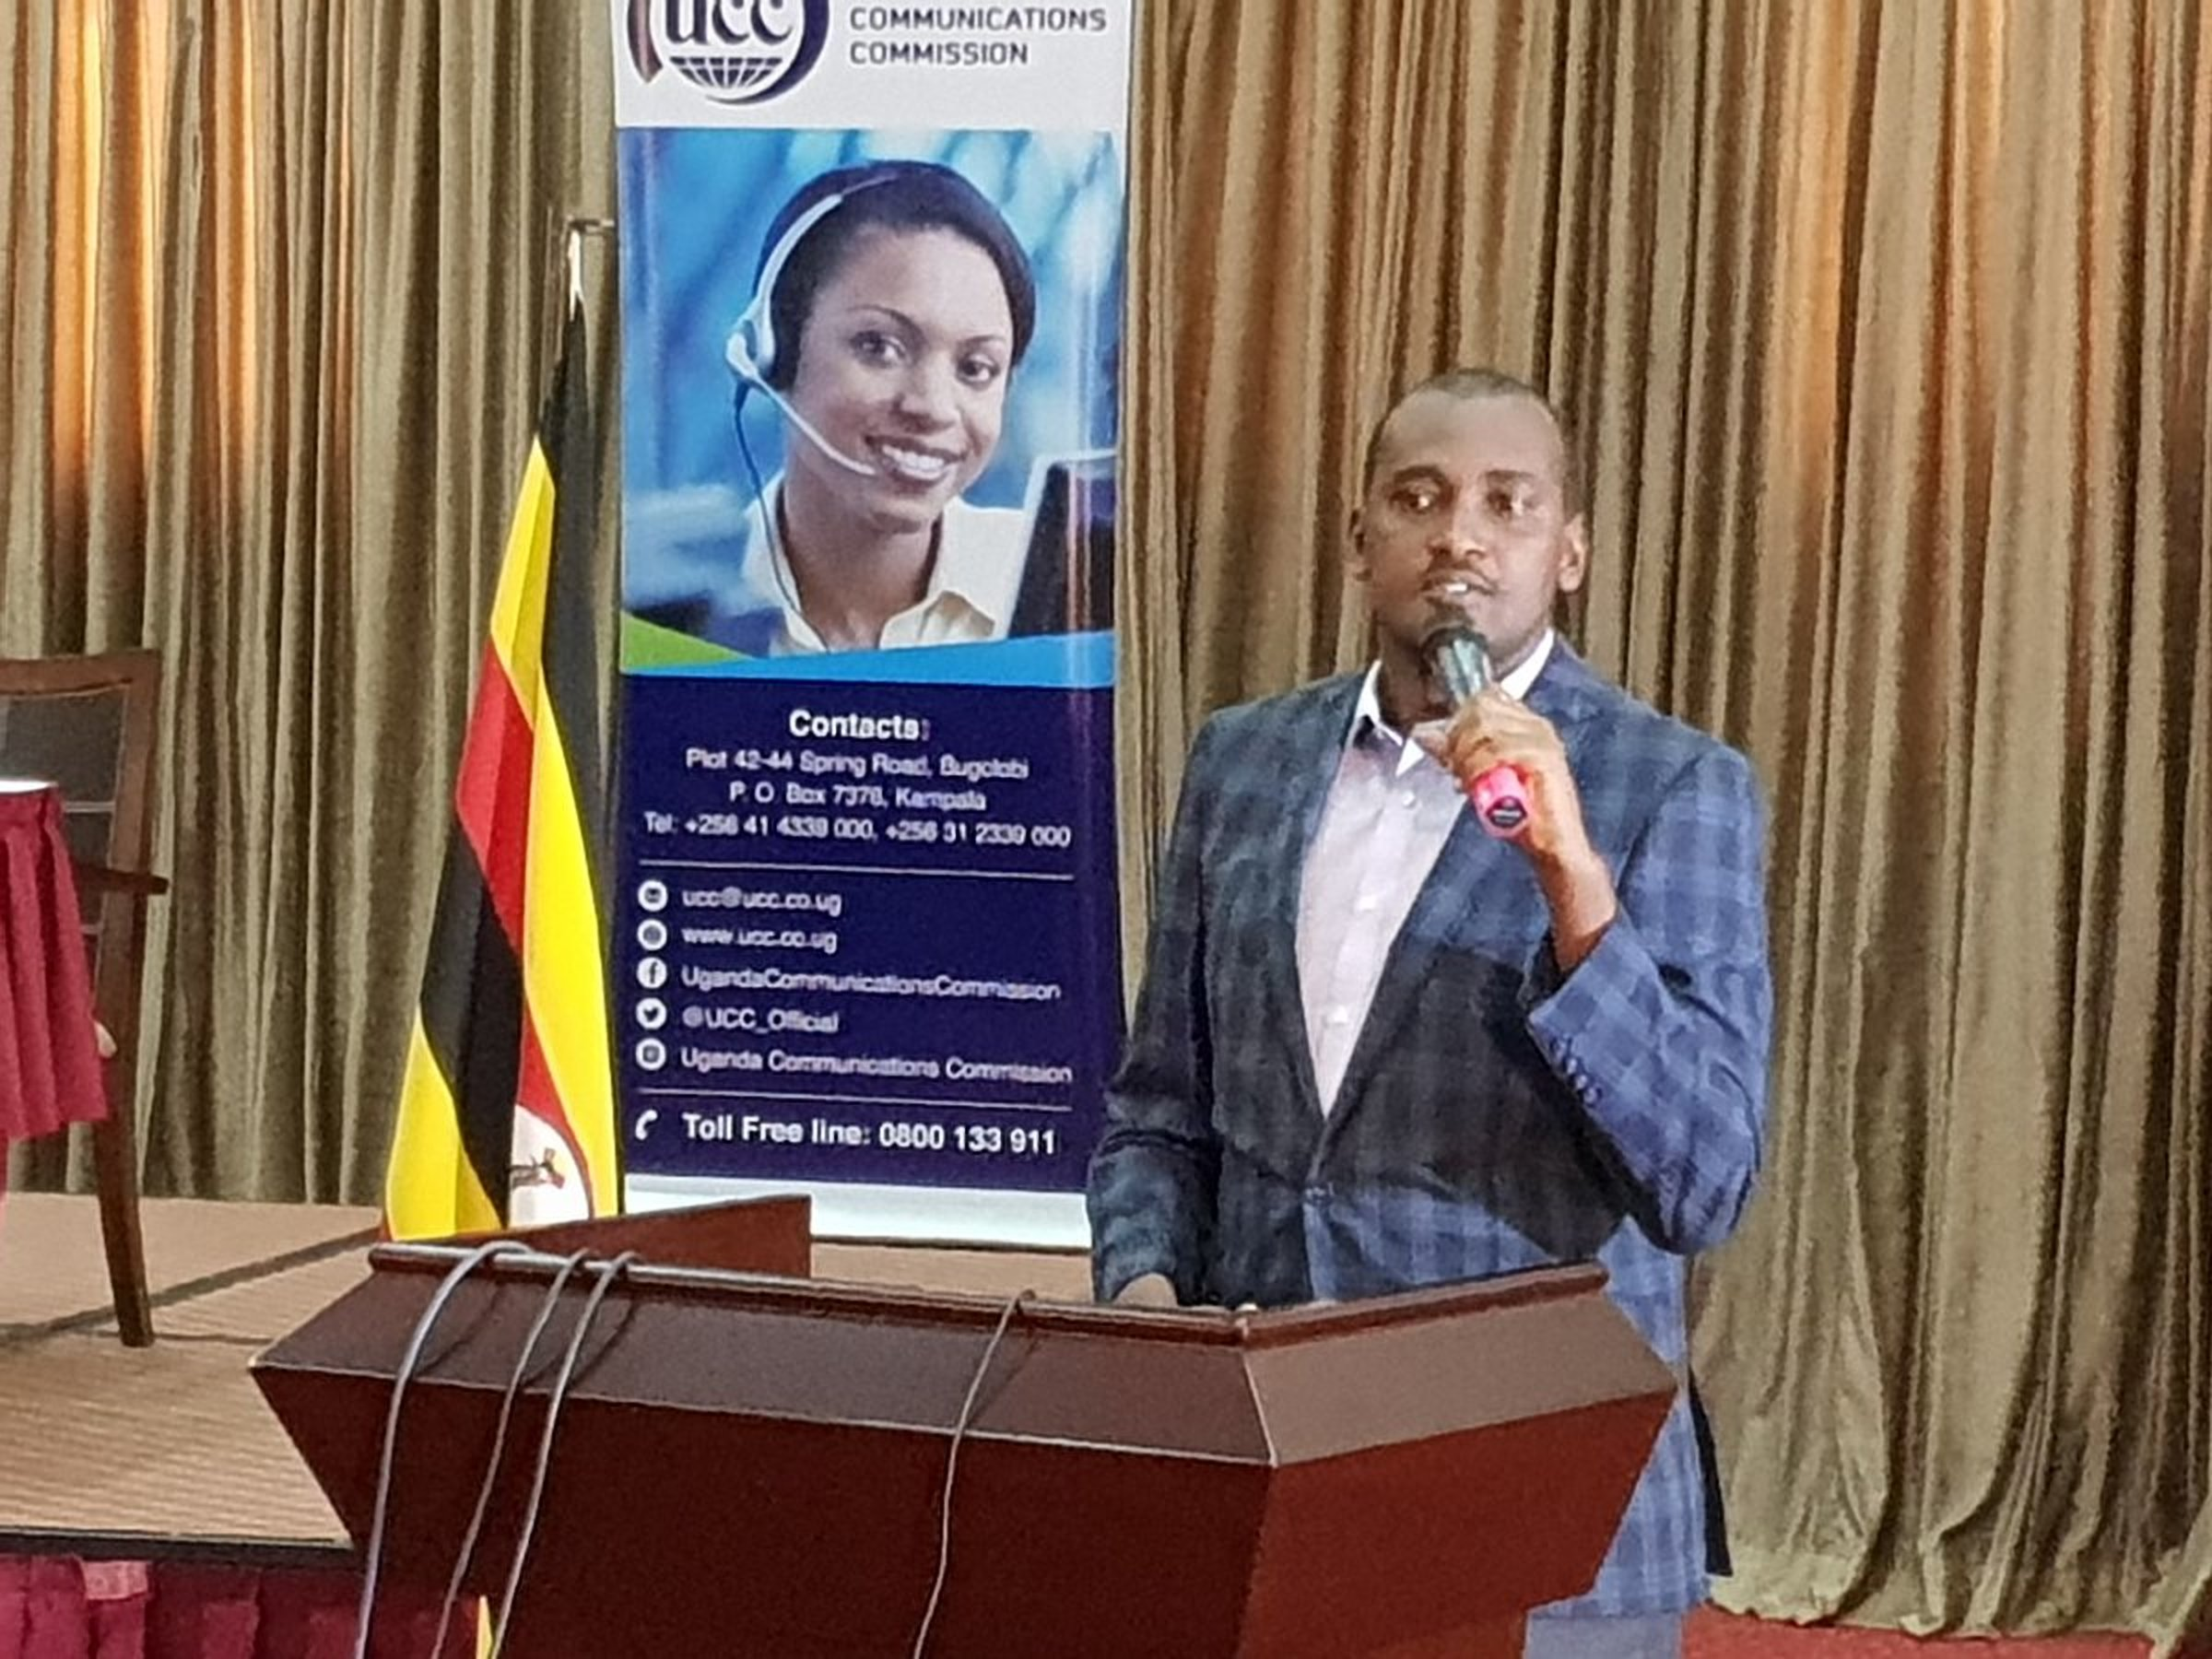 Information and National Guidance Minster Mr Frank Tumwebaze cautioned journalists and media houses to draw a line between political and fake news in giving content to the public. He made the remarks at the Annual Broadcasters Conference at Imperial Royale, Kampala Wednesday morning